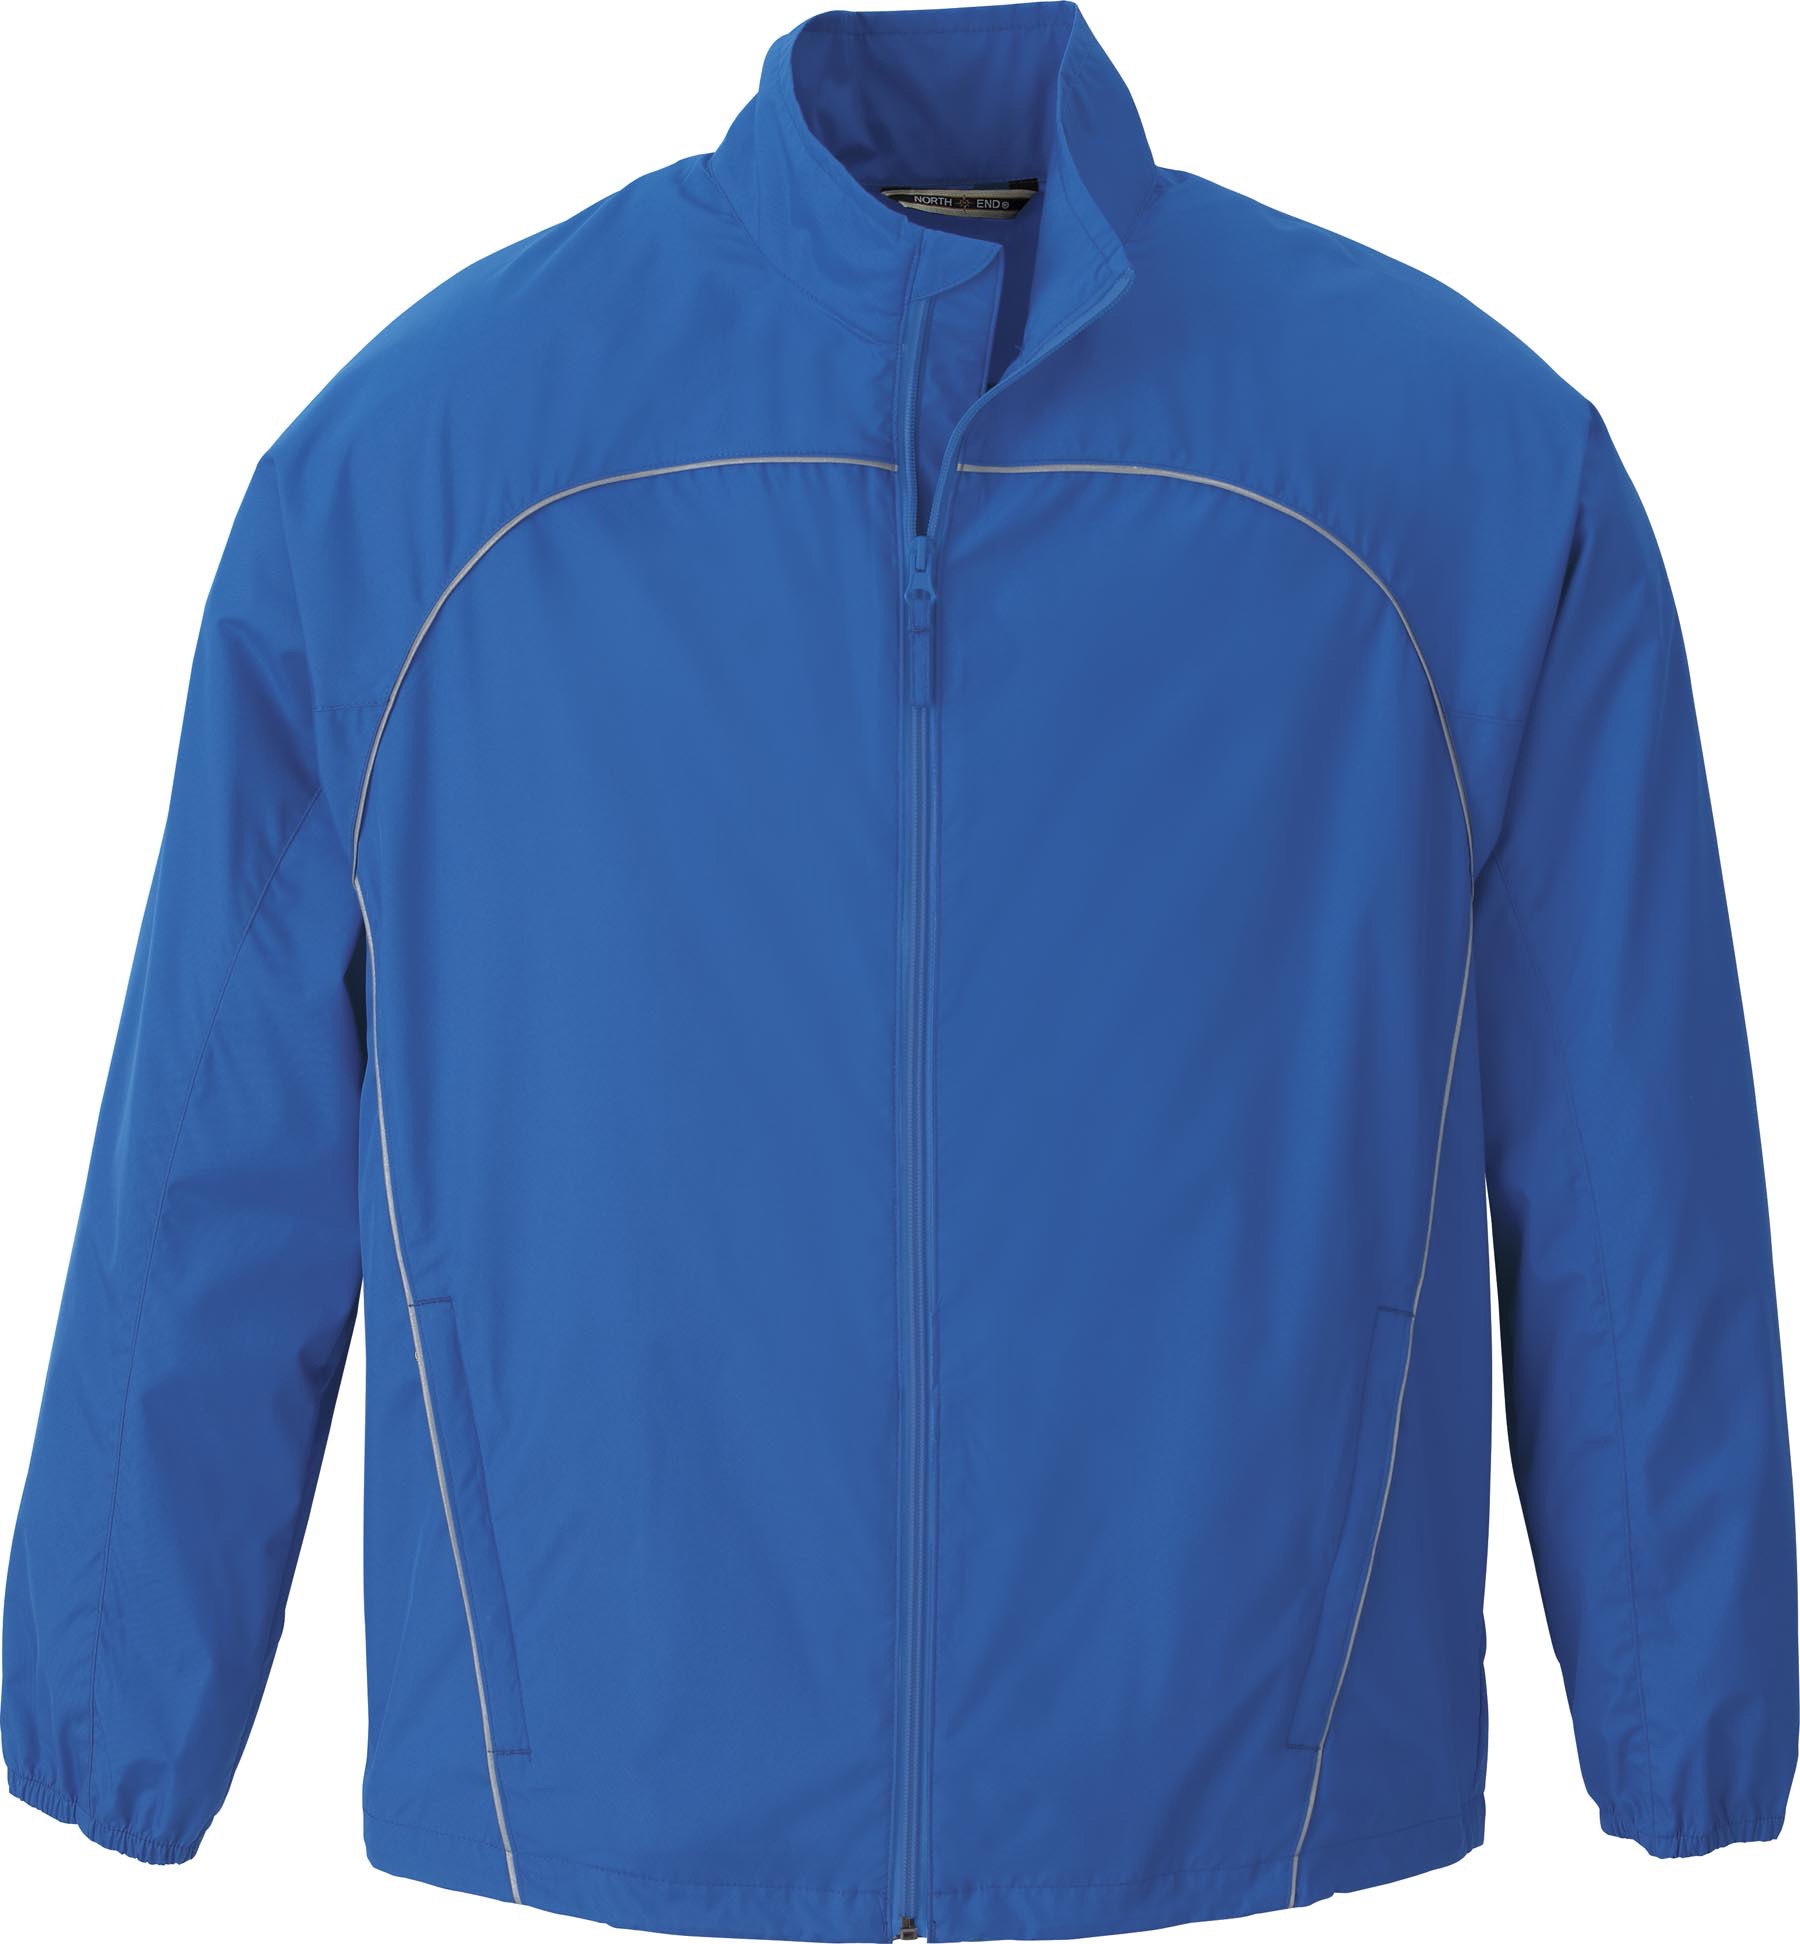 5f8db90471 Ash City e.c.o Outerwear 88136 - Men s Lightweight Recycled Polyester  Jacket  25.87 - Men s Outerwear